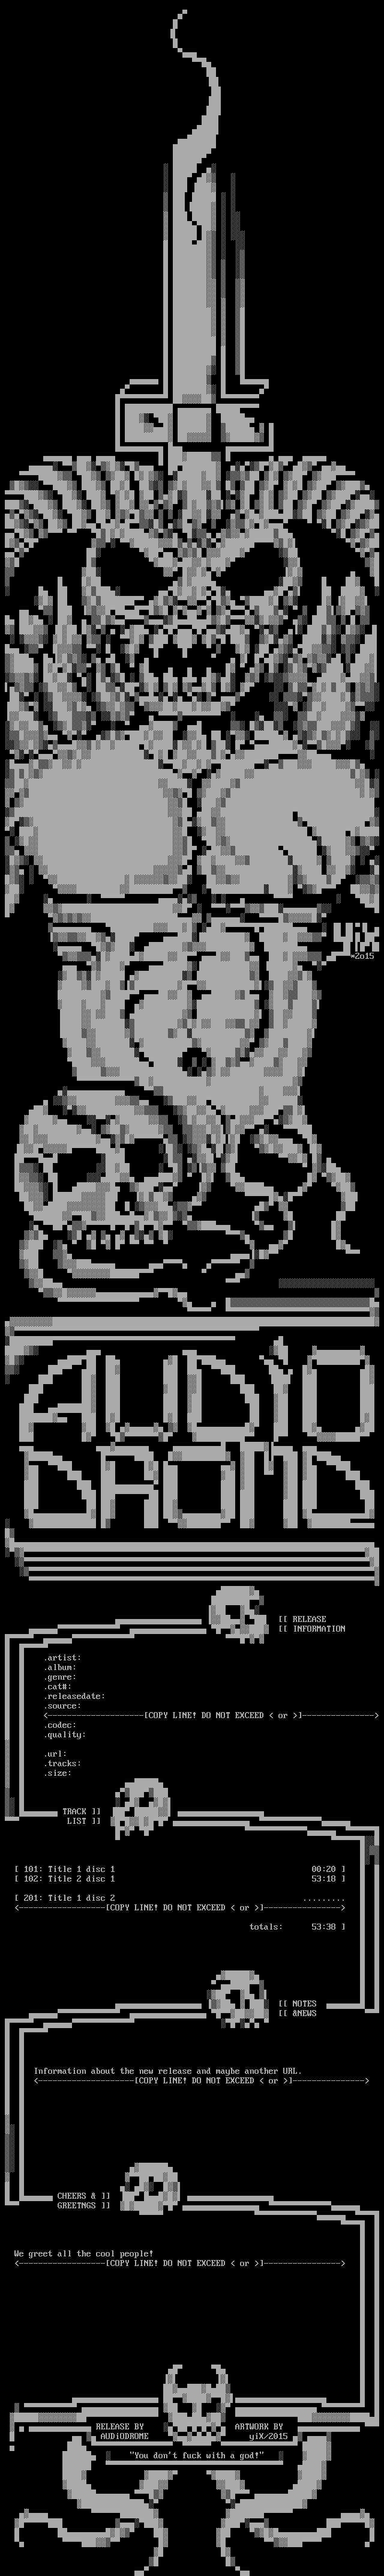 AUDiODROME by yiX